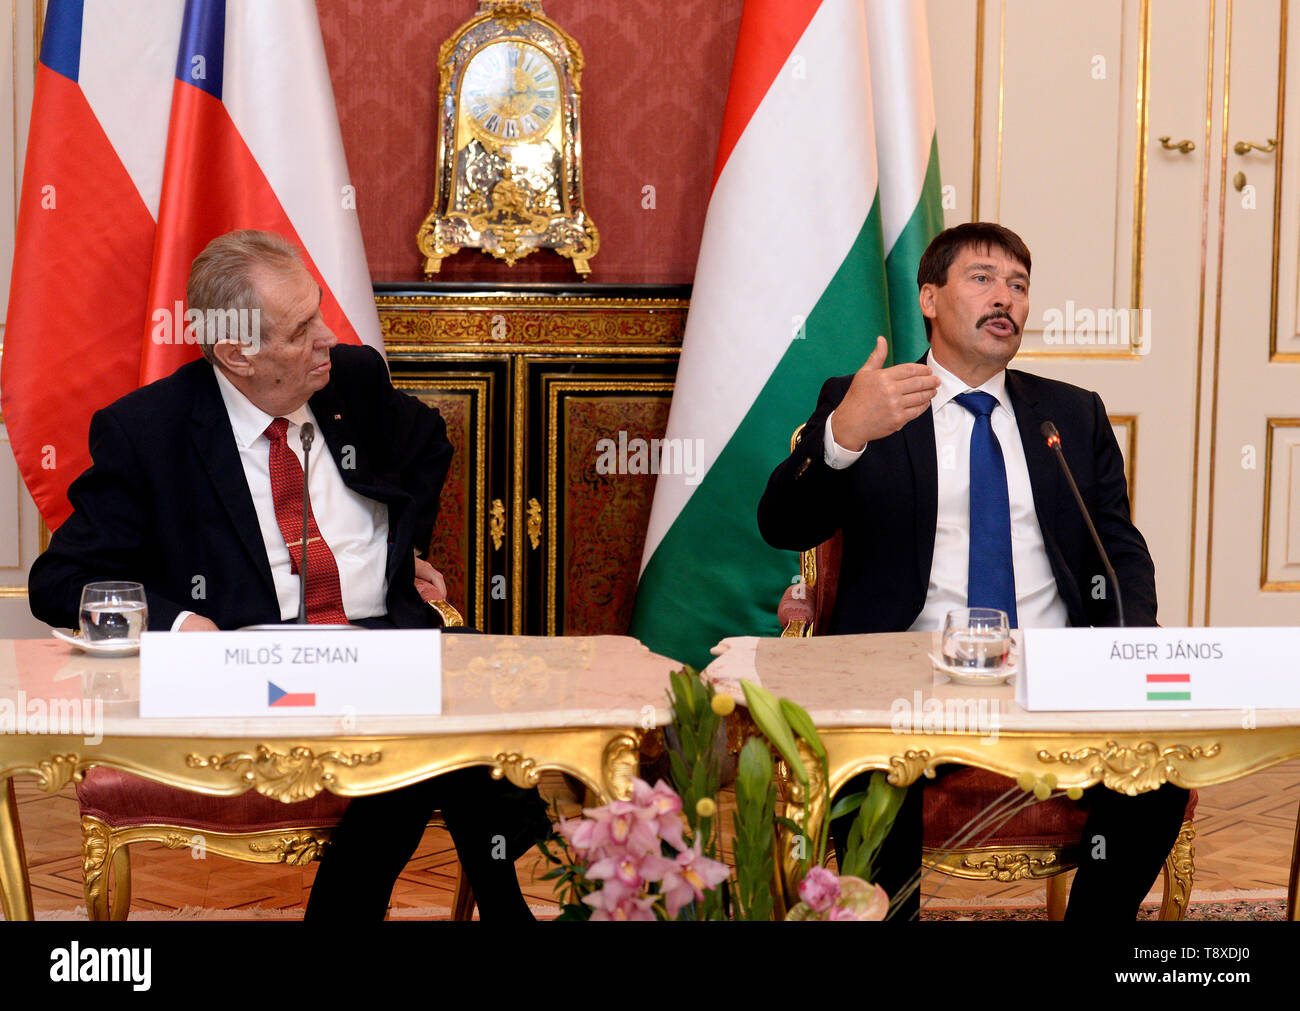 Budapest, Hungary. 15th May, 2019. Czech President Milos Zeman (left) and Hungarian President Janos Ader (right) talk during a press conference after their meeting on May 15, 2019, in Budapest, Hungary. Credit: Katerina Sulova/CTK Photo/Alamy Live News Stock Photo